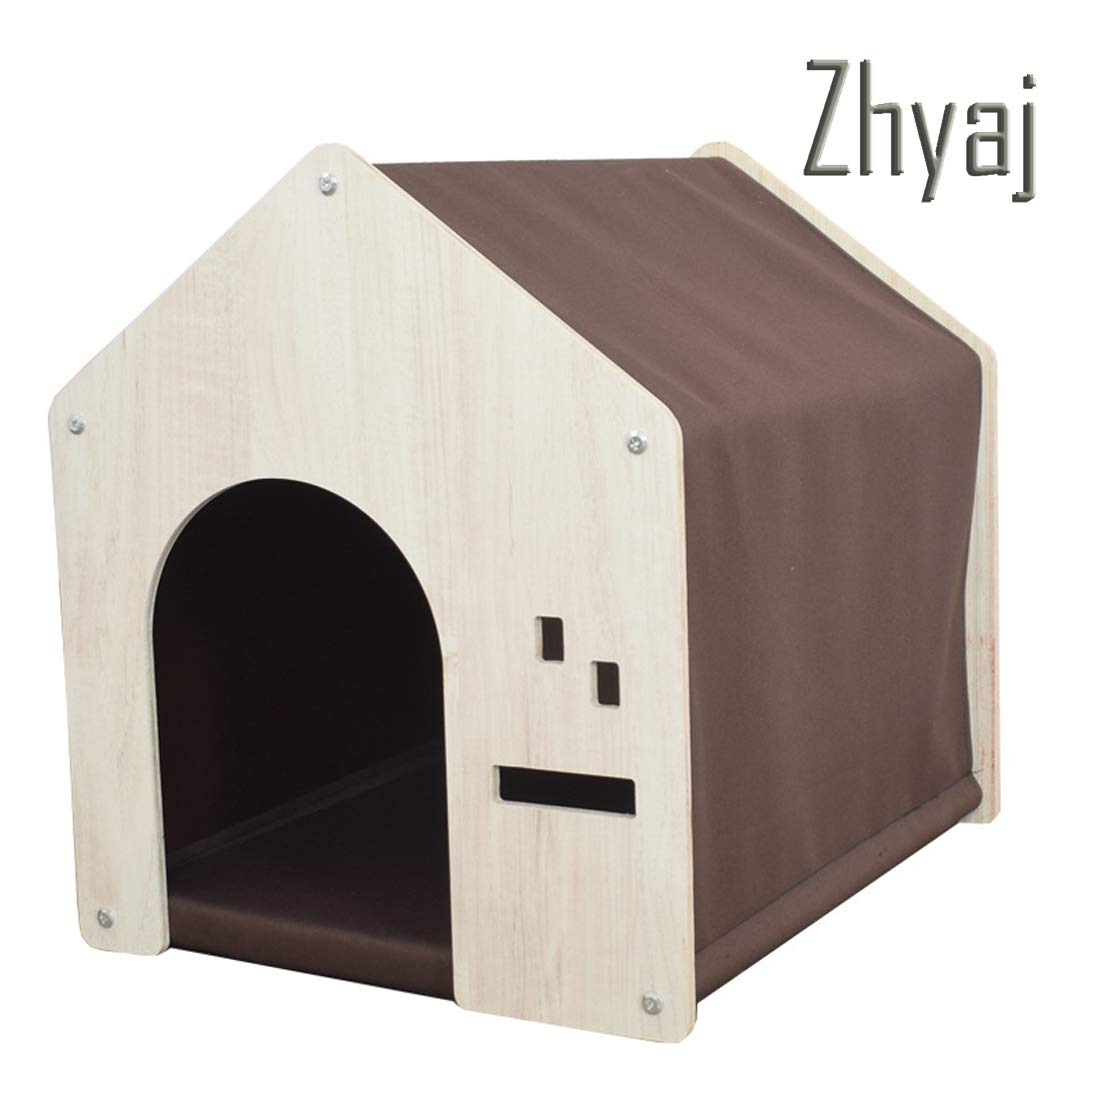 C Garden Furniture, Rainproof Breathable Stable Durable Natural Pine Comfortable Dog Bed 800D Fabric Detachable Easy to Install Ventilation Guinea Pig Cage Outdoor Dog House,C